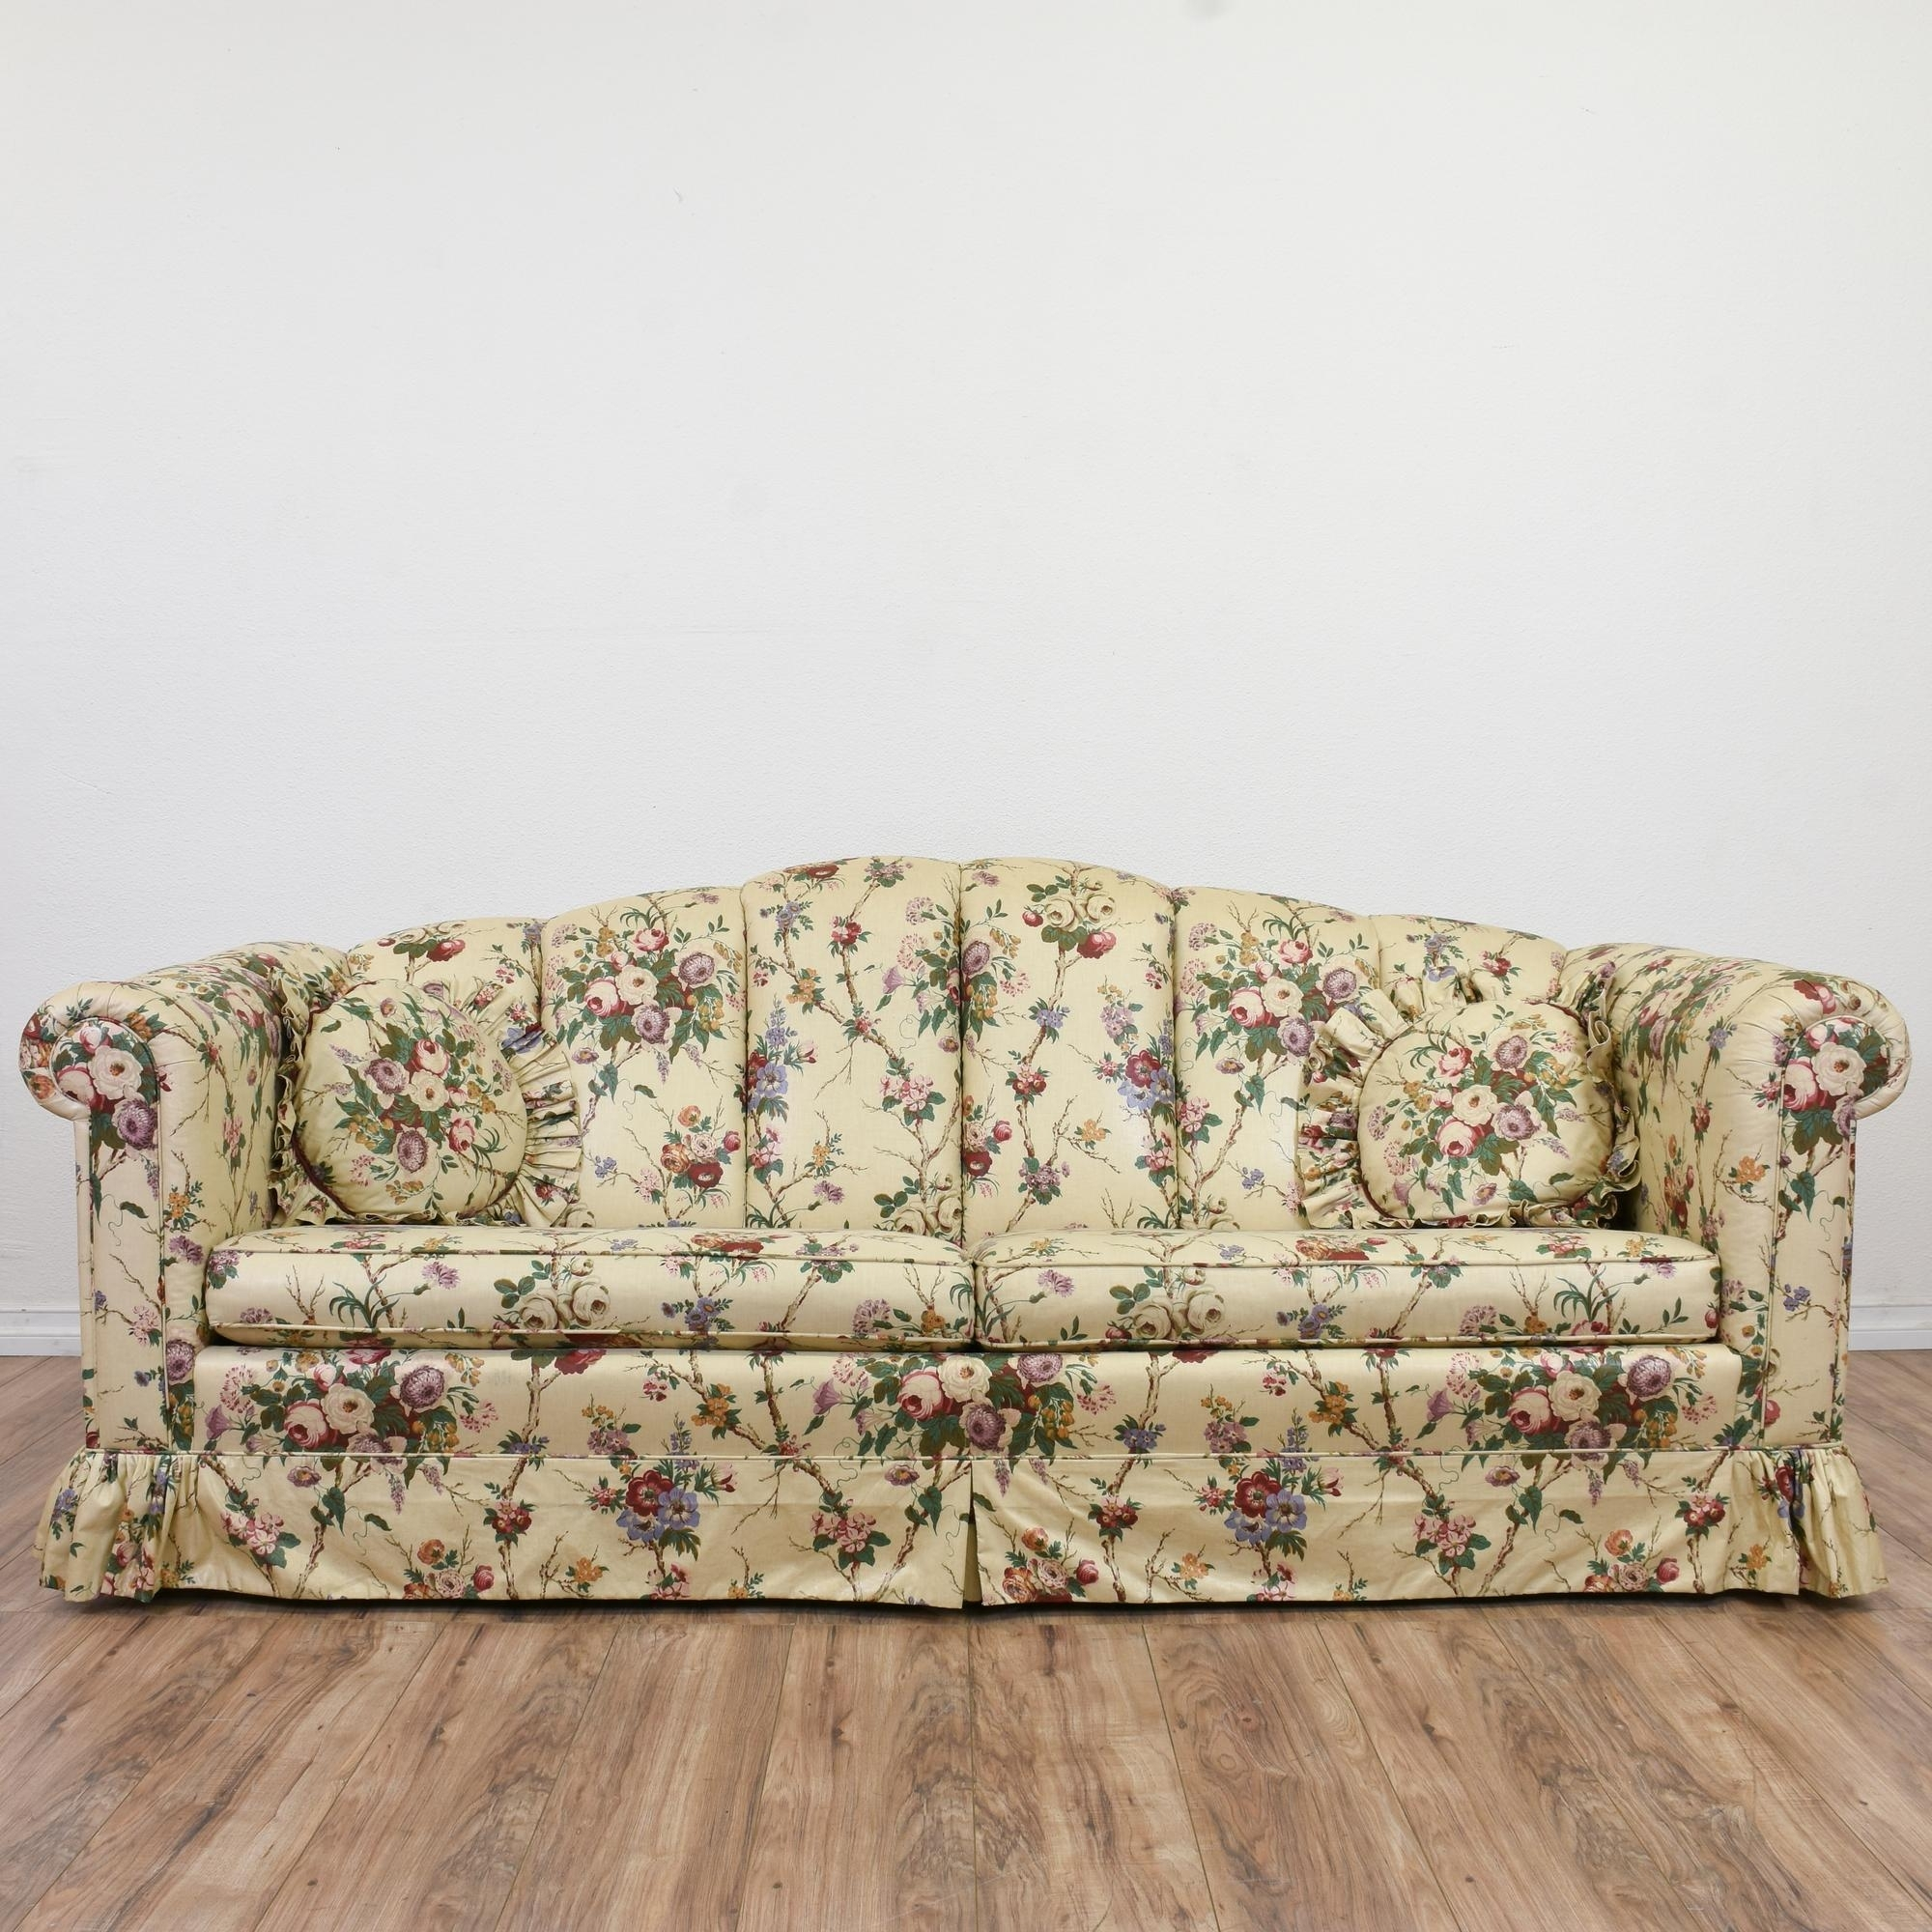 This Sofa Is Upholstered In A Durable Off White Beige, Pink And Regarding 2019 Chintz Covered Sofas (View 2 of 20)